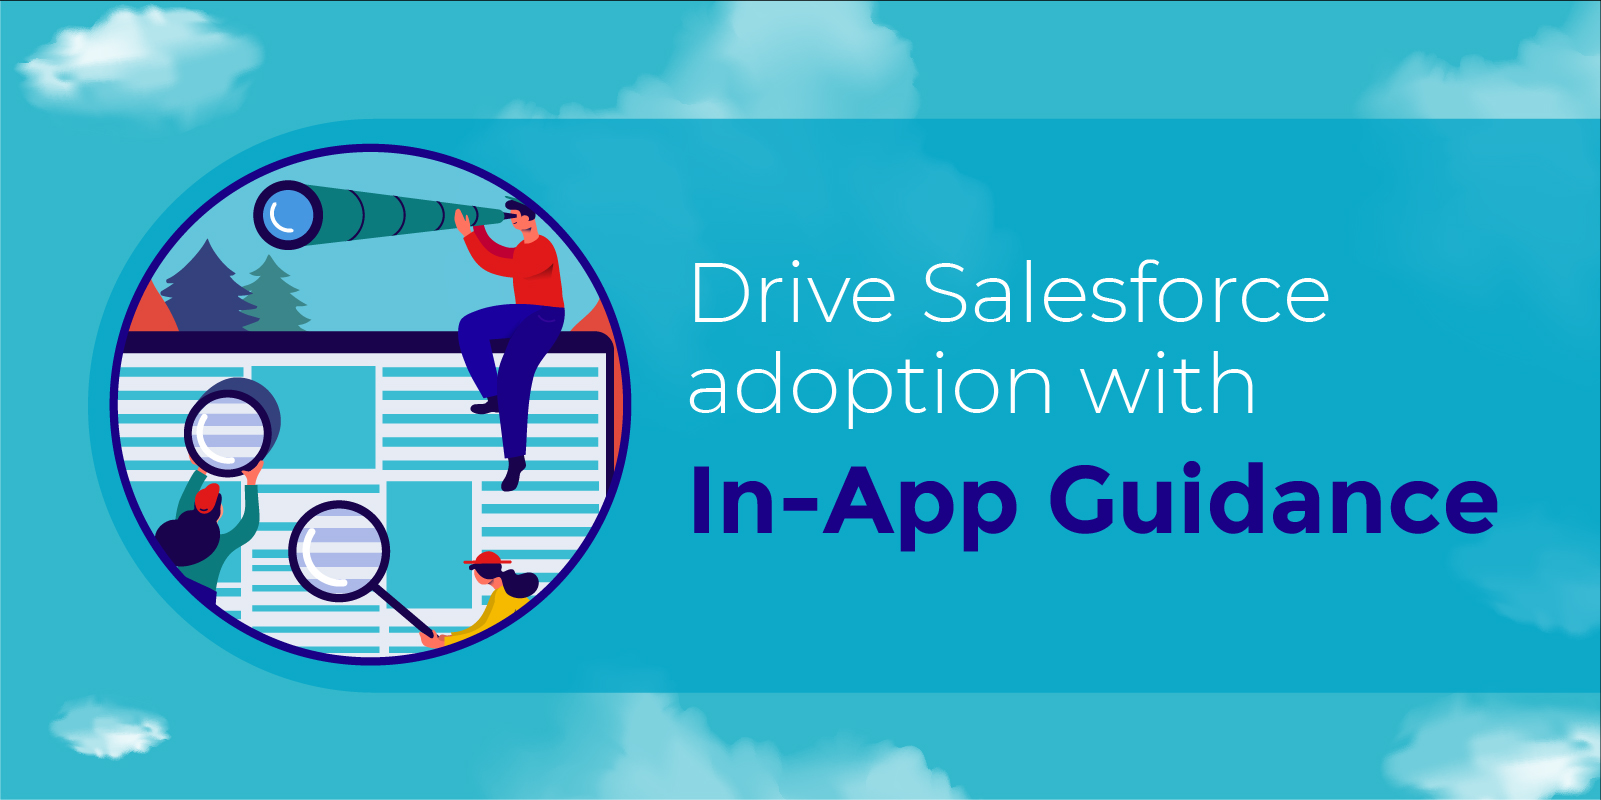 Unboxing Salesforce Winter '20 edition  Accelerate the adoption with Salesforce In-App guidance